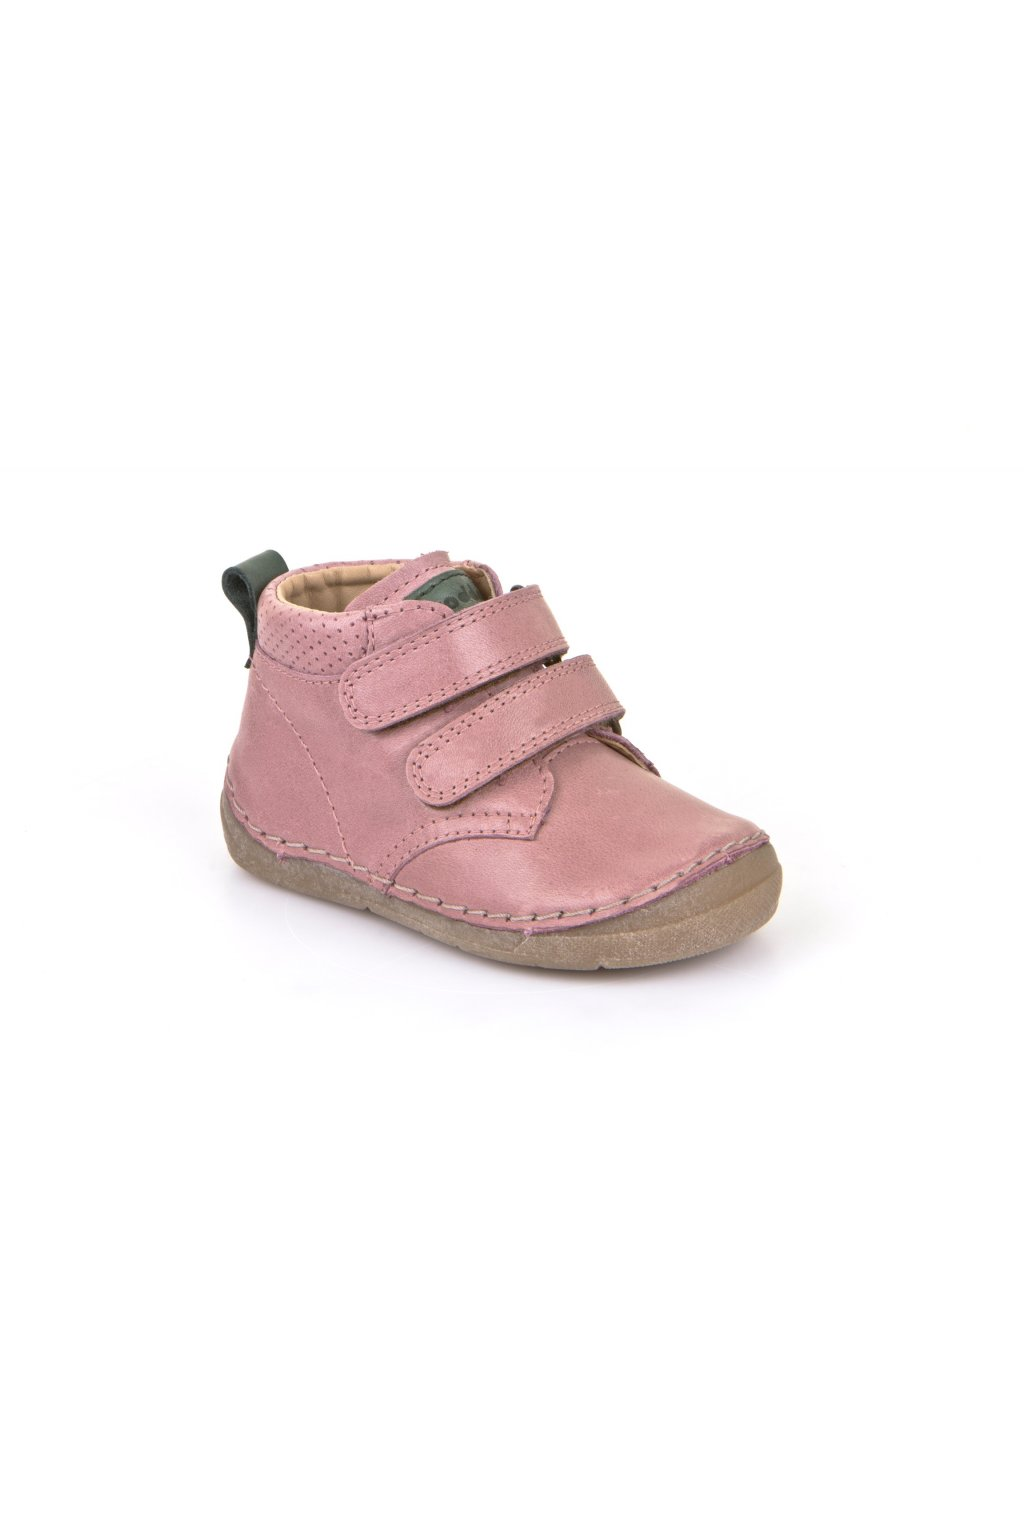 Froddo shoes Light Pink